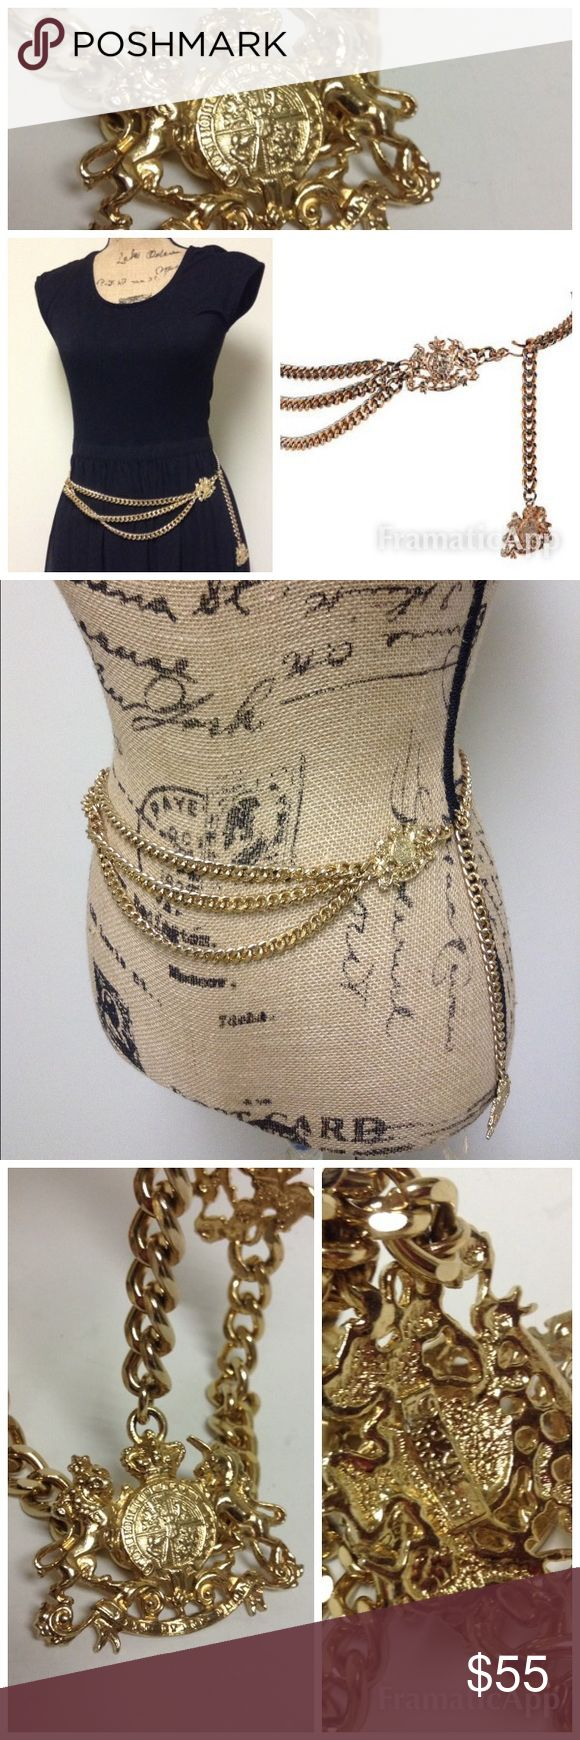 Accessorcraft N.Y.C Gold Chain Belt Accessorcraft N.Y.C Vintage Gold Tone Chain Belt with hook closer in excellent almost like new condition . Accessocraft N.Y.C Accessories Belts